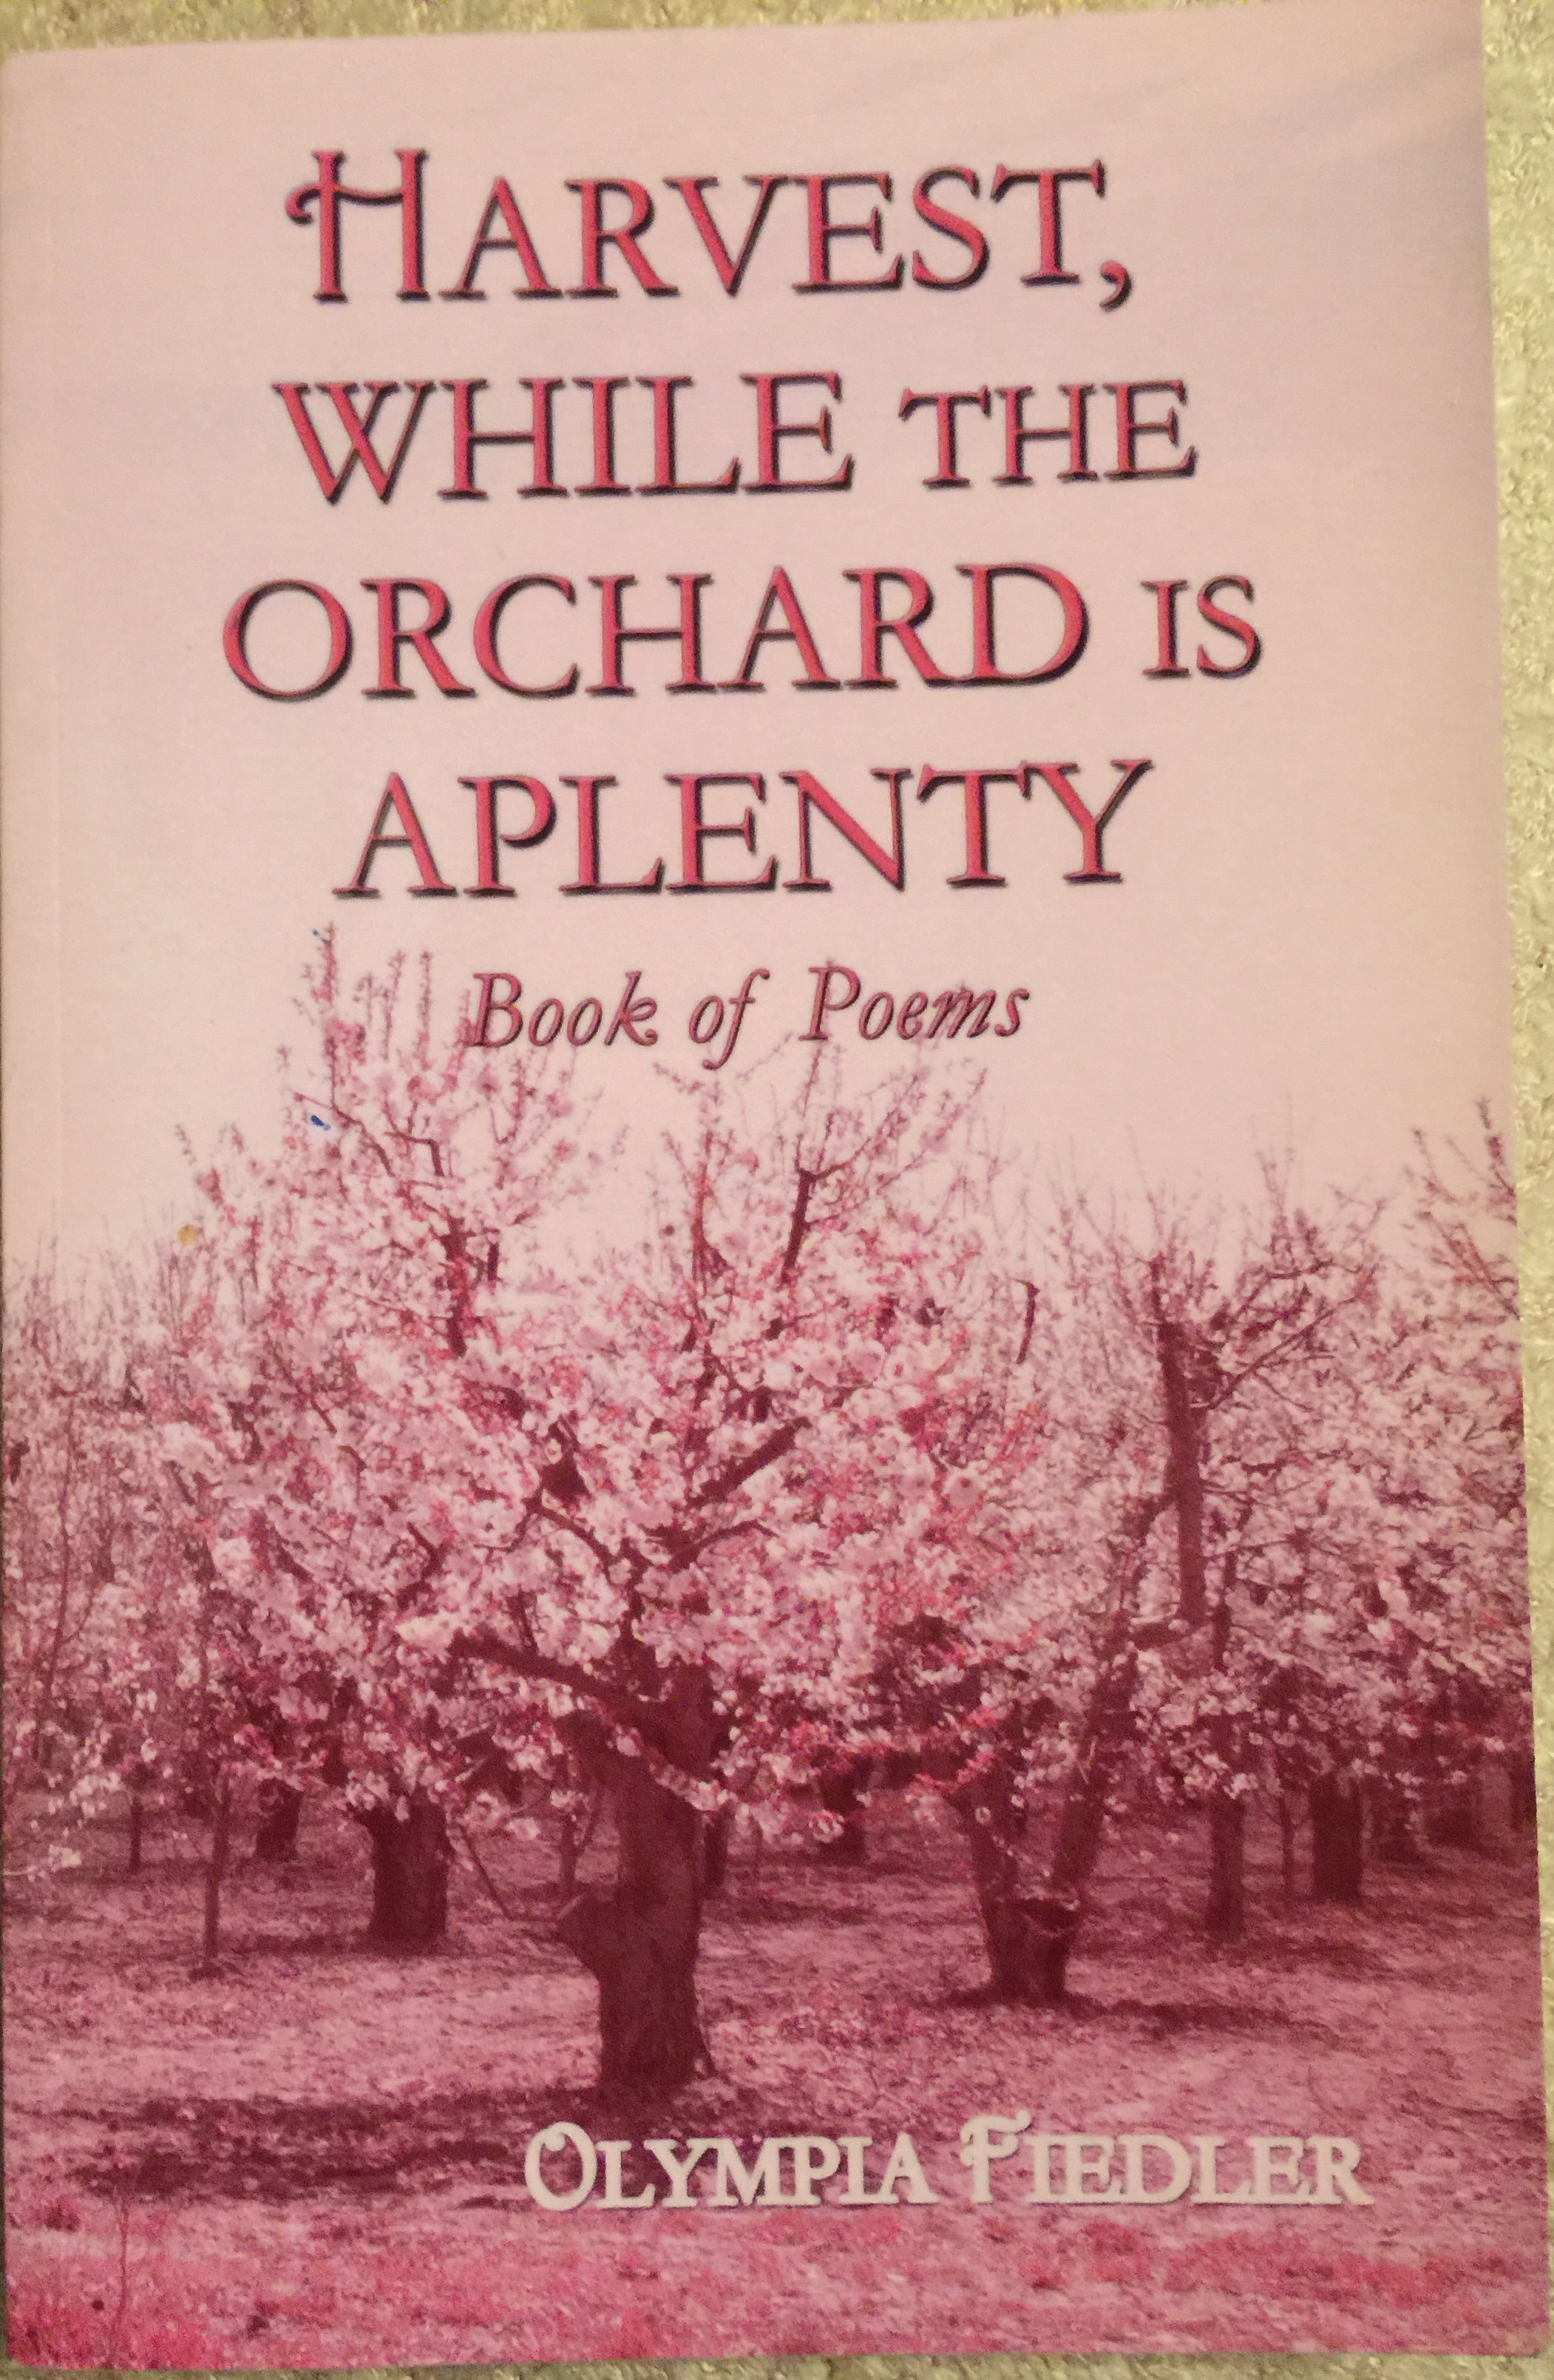 Harvest While the Orchard is Aplenty by Olympia Fiedler